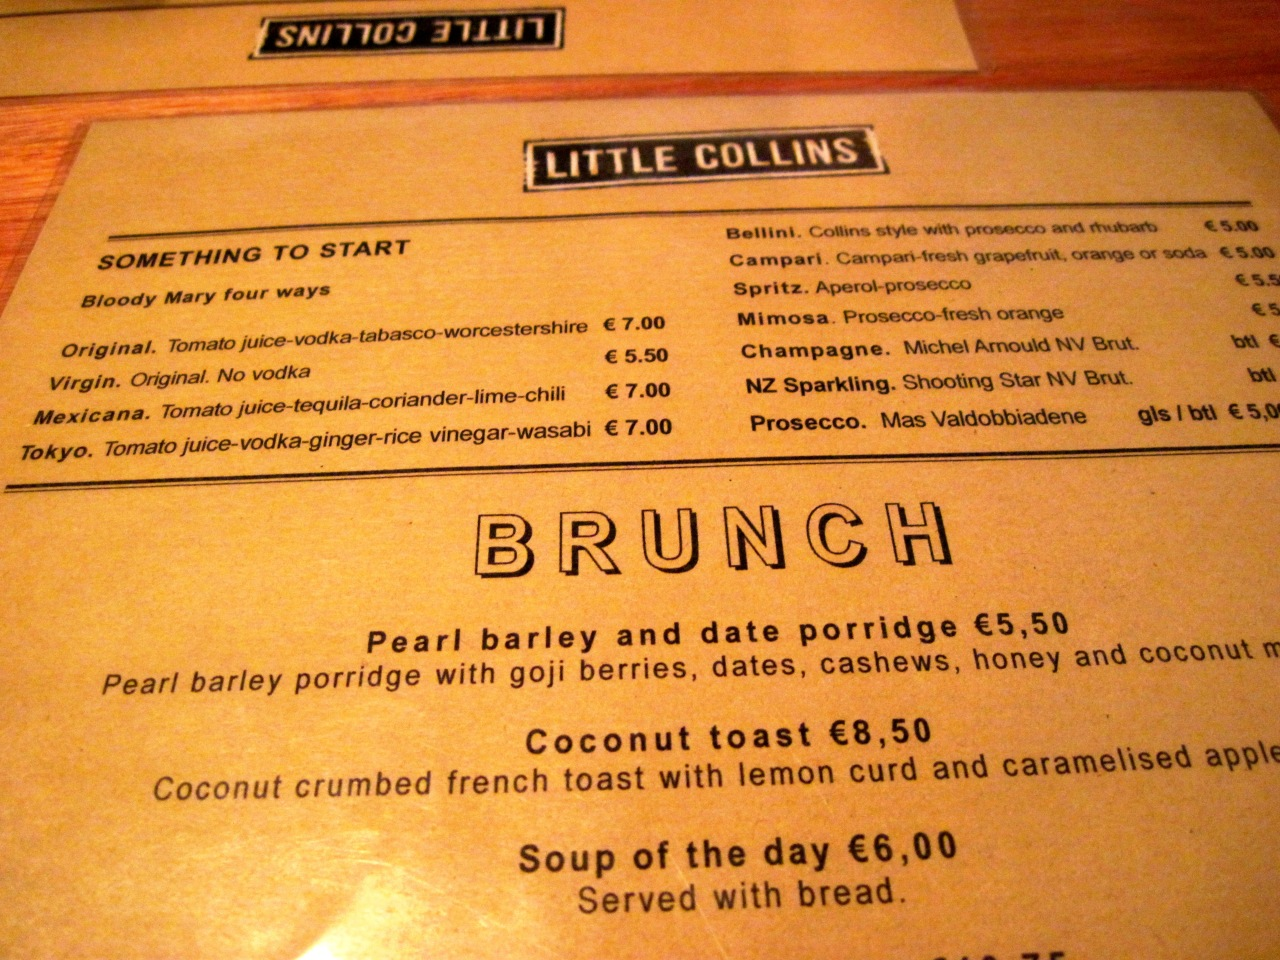 Amsterdam: Aussie brunch at Little Collins